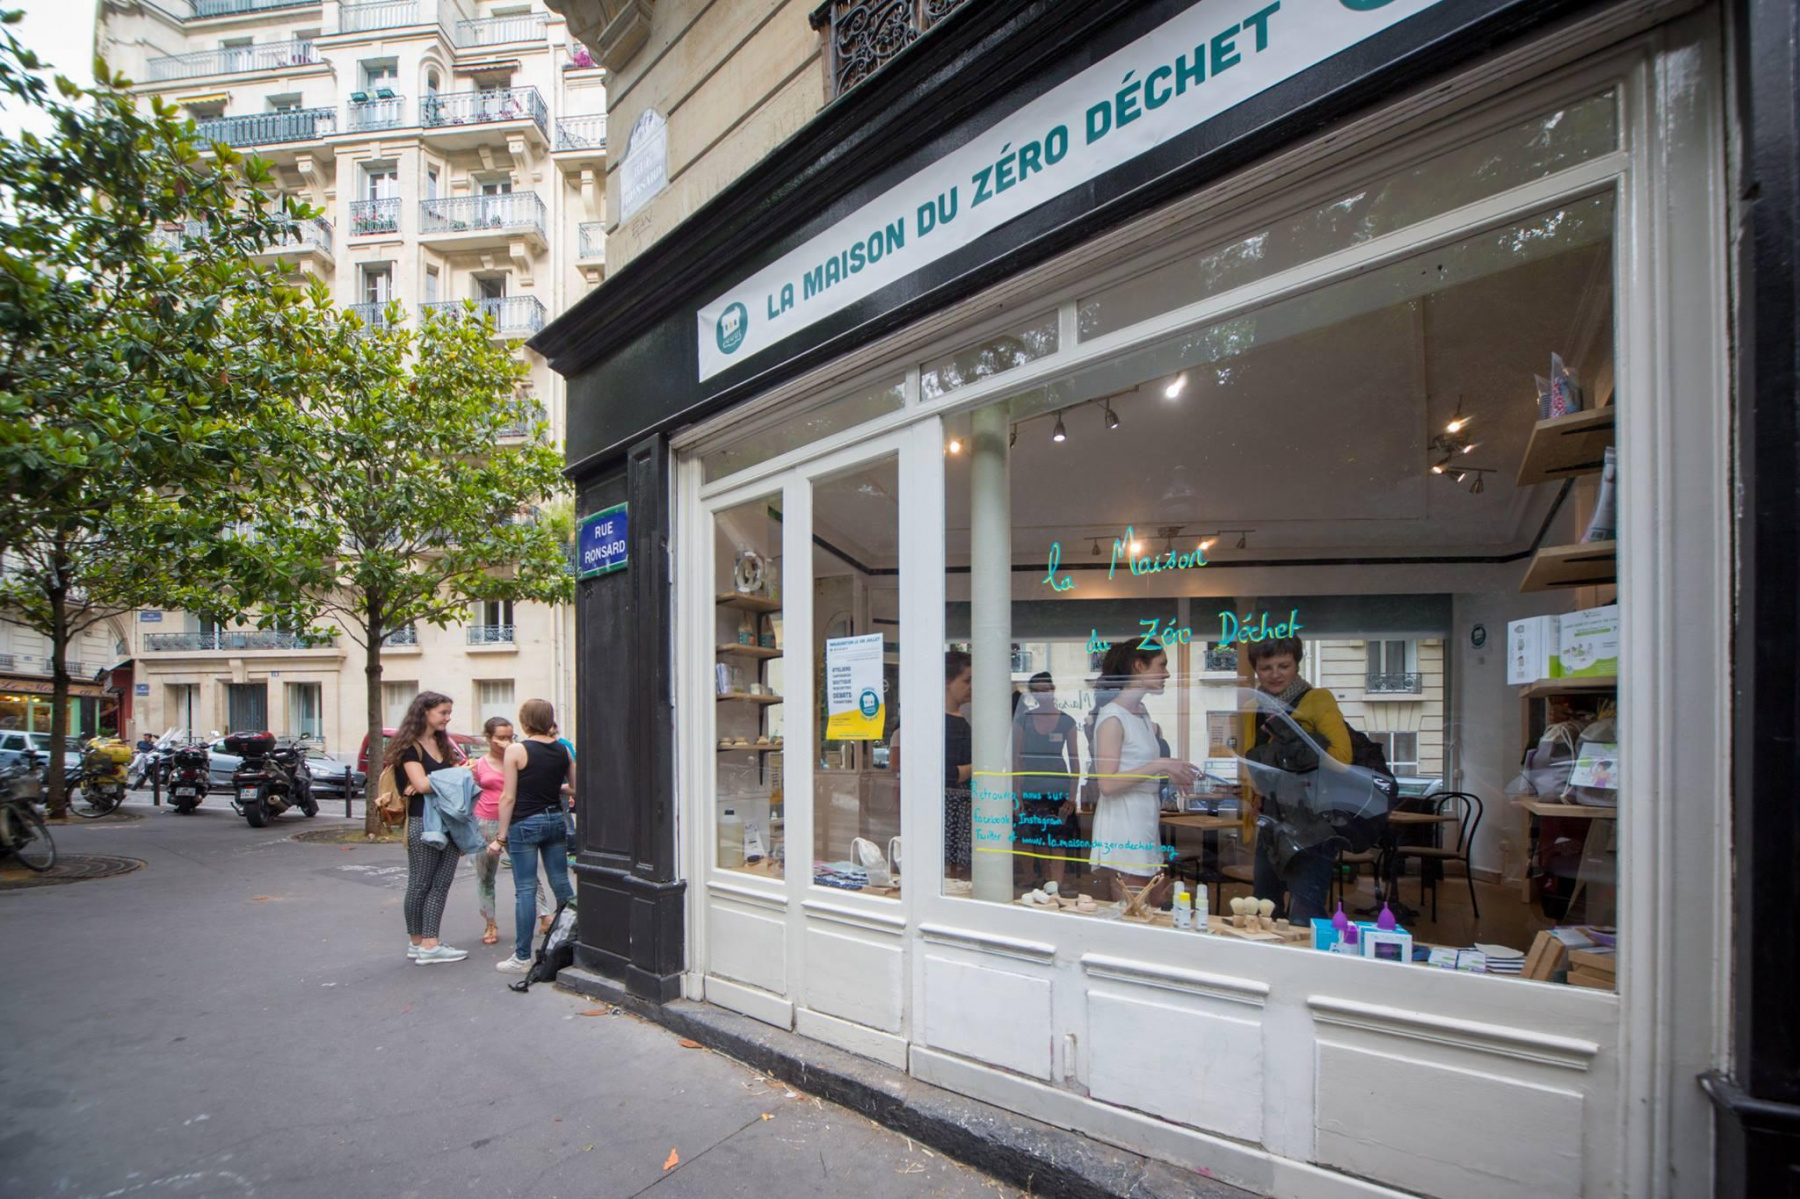 La Maison du Zéro Déchet, the zero-waste store in Paris